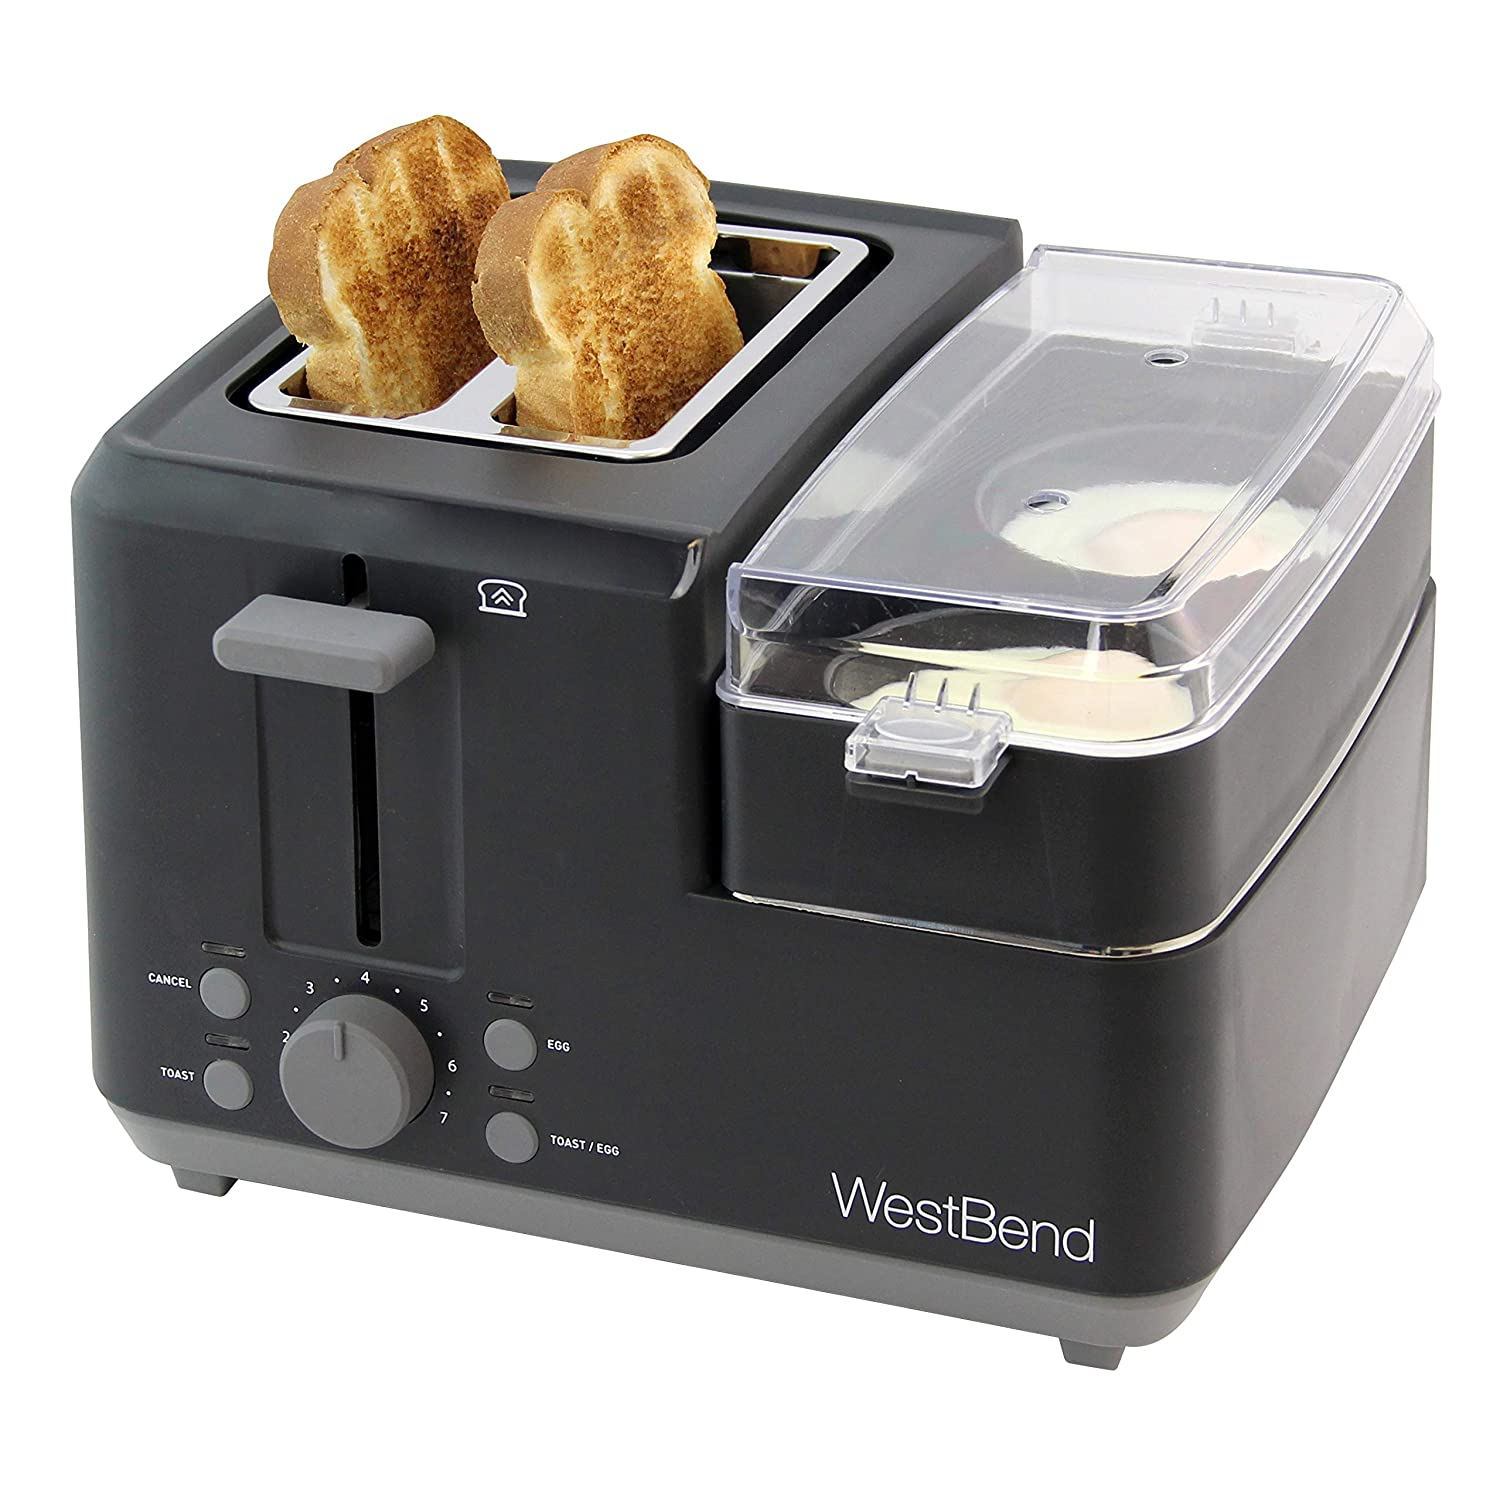 West Bend 78500 Breakfast Station Quick Egg Bagel and Muffin Wide Slot Toaster with Removable Crumb Tray With Meat or Vegetable Warming Tray with Egg Cooker and Poacher, 2-Slice, Black